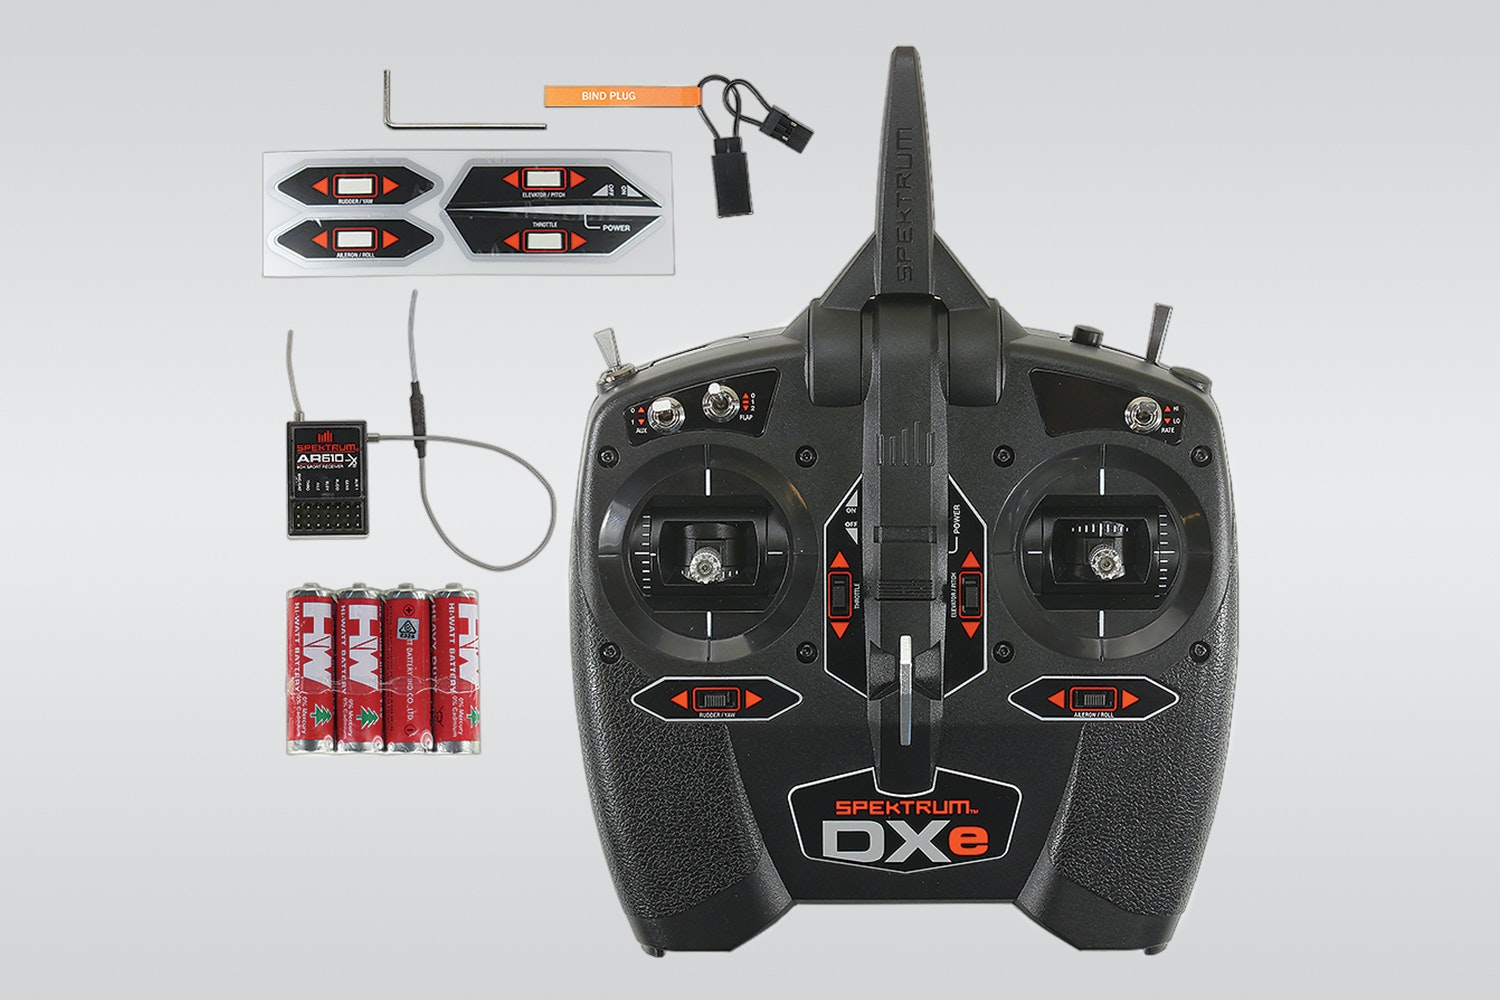 Spektrum DXE 6-channel radio with an AR610 receiver (+ $85)